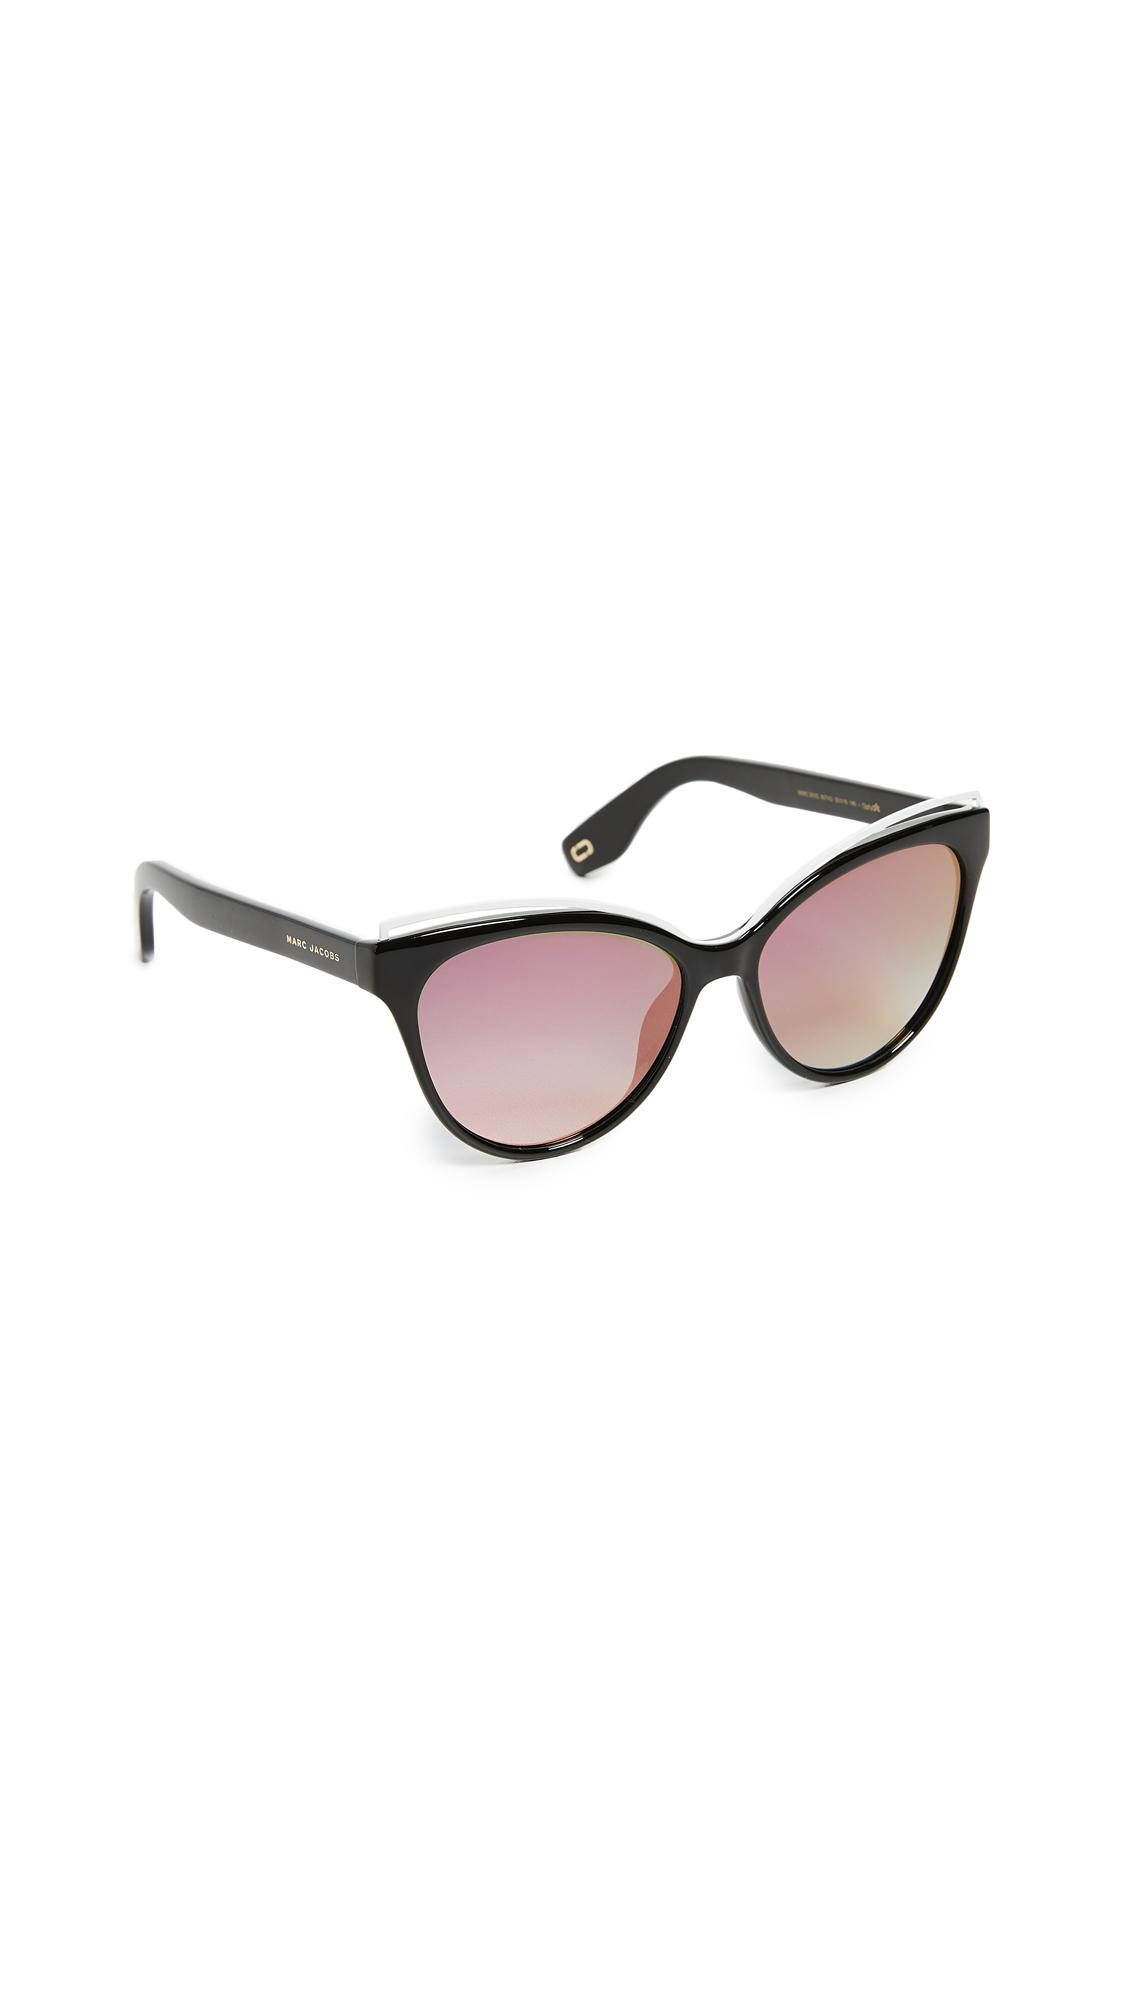 810b85c6b794 Marc Jacobs Cat Eye Frame Sunglasses In Pink Dark Grey